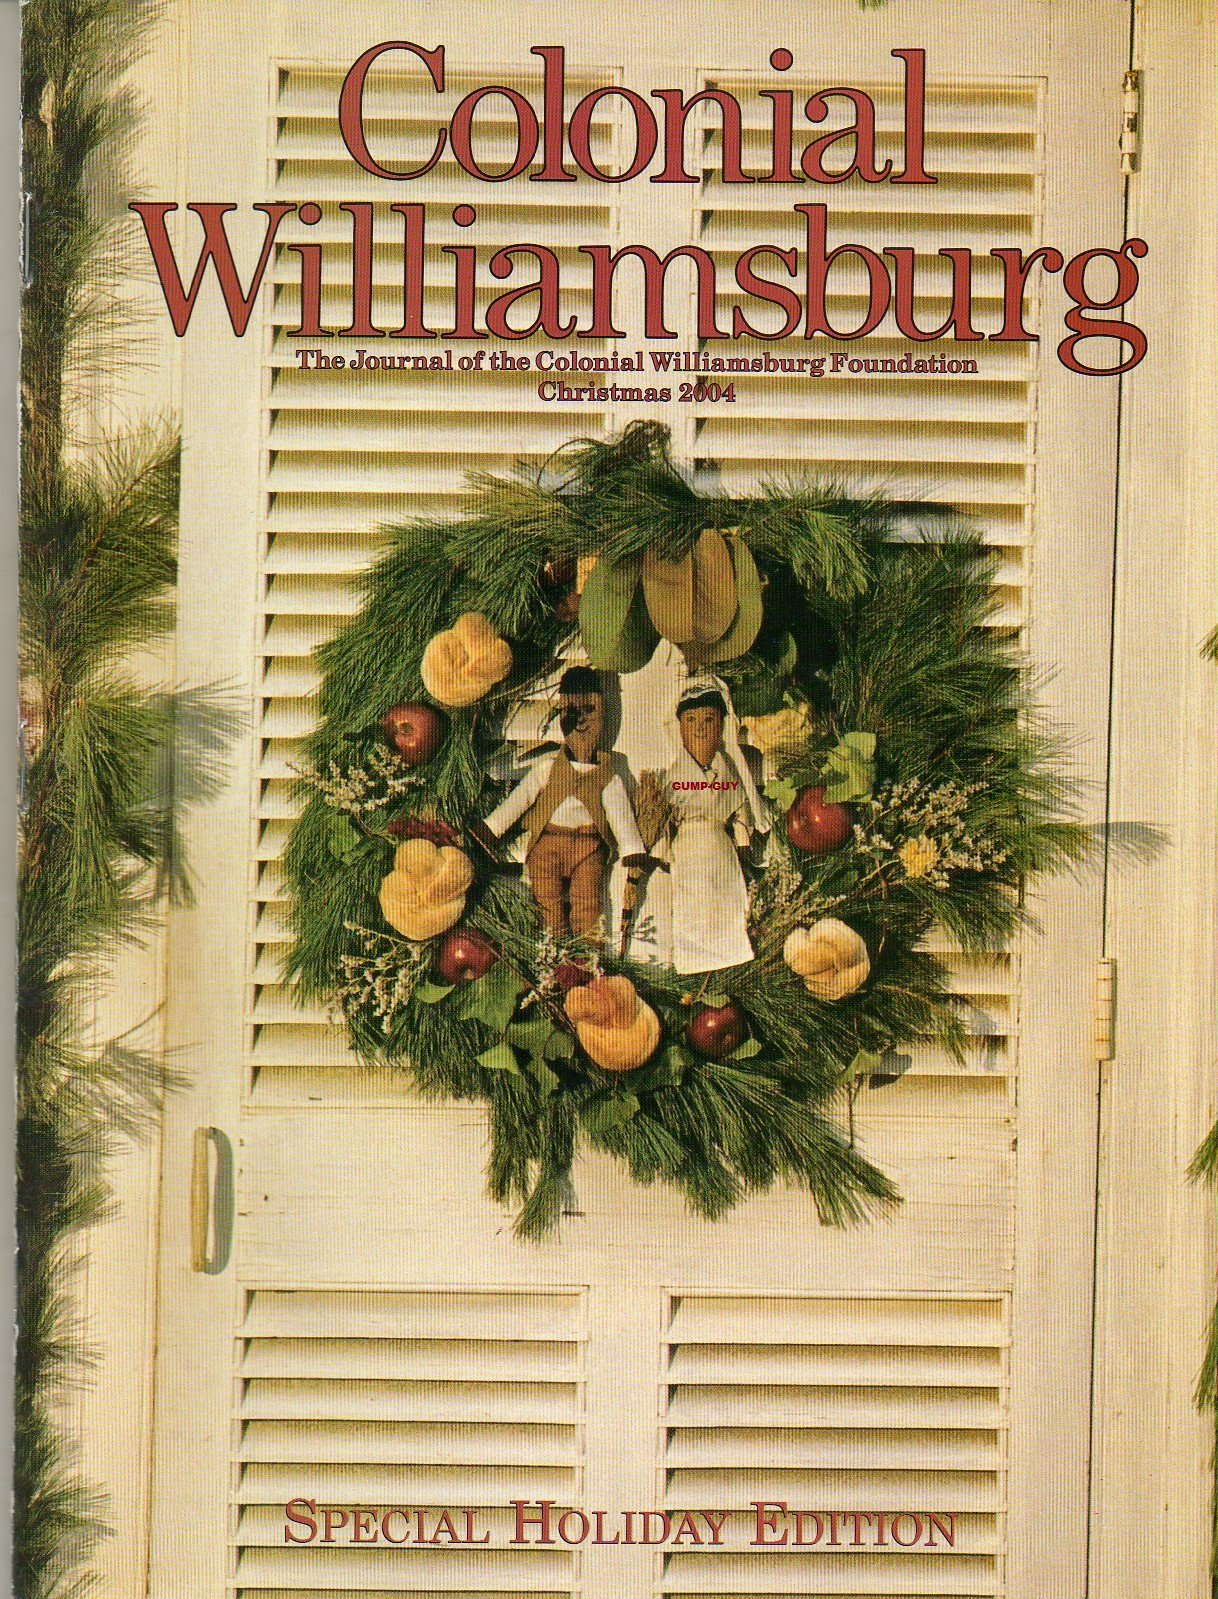 Colonial Williamsburg Christmas.The Journal Of The Colonial Williamsburg Foundation Special